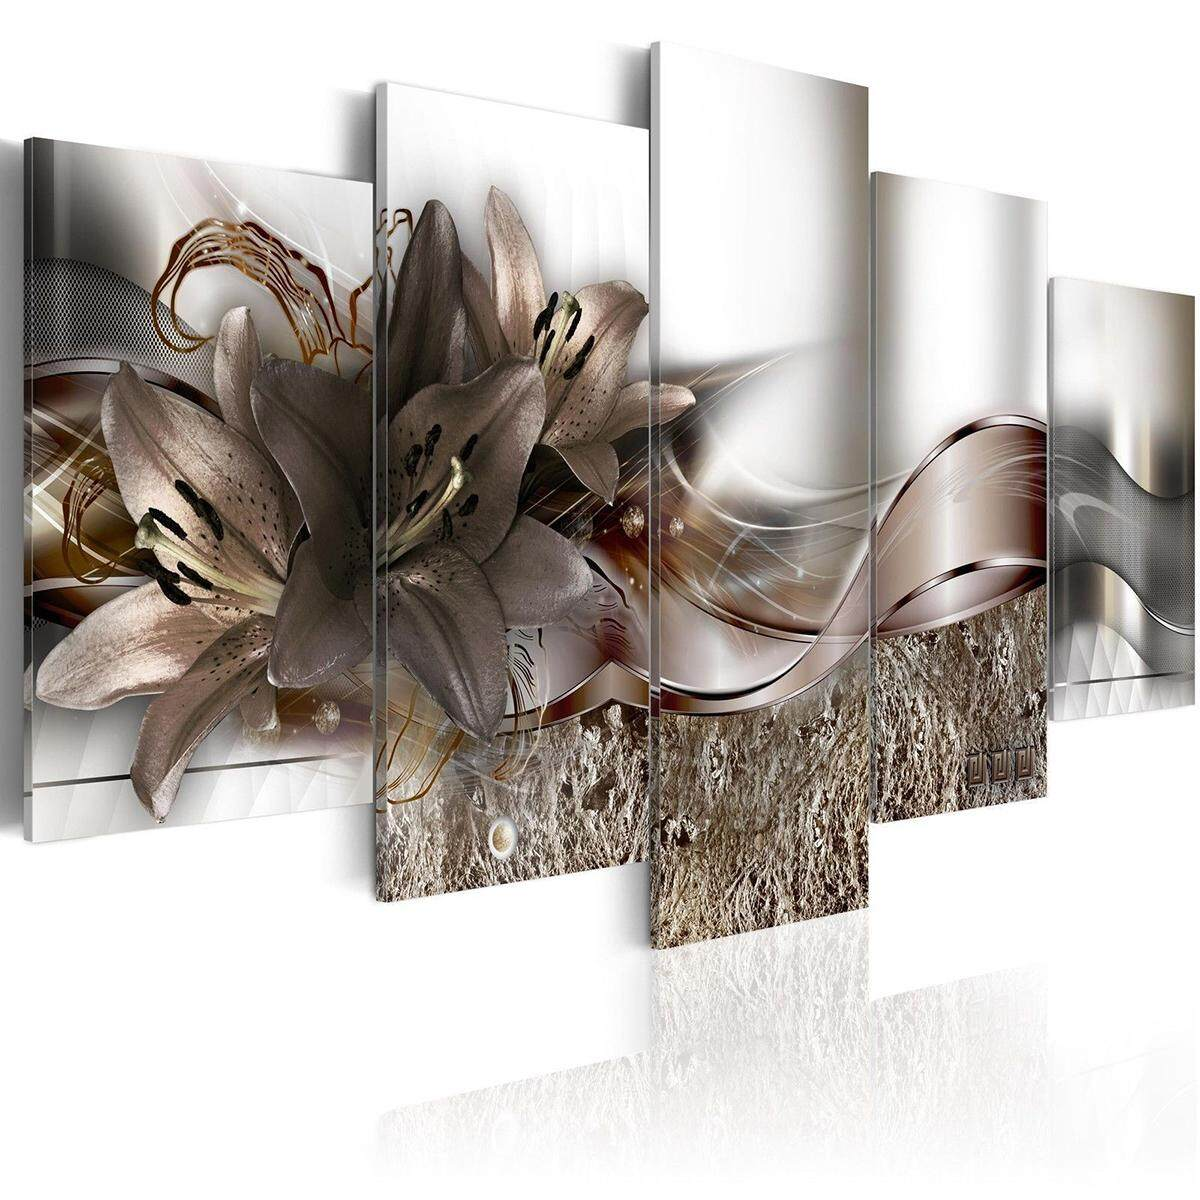 5 Panels Large Abstract Flowers Print Pictures Canvas Wall Art Prints Unframed